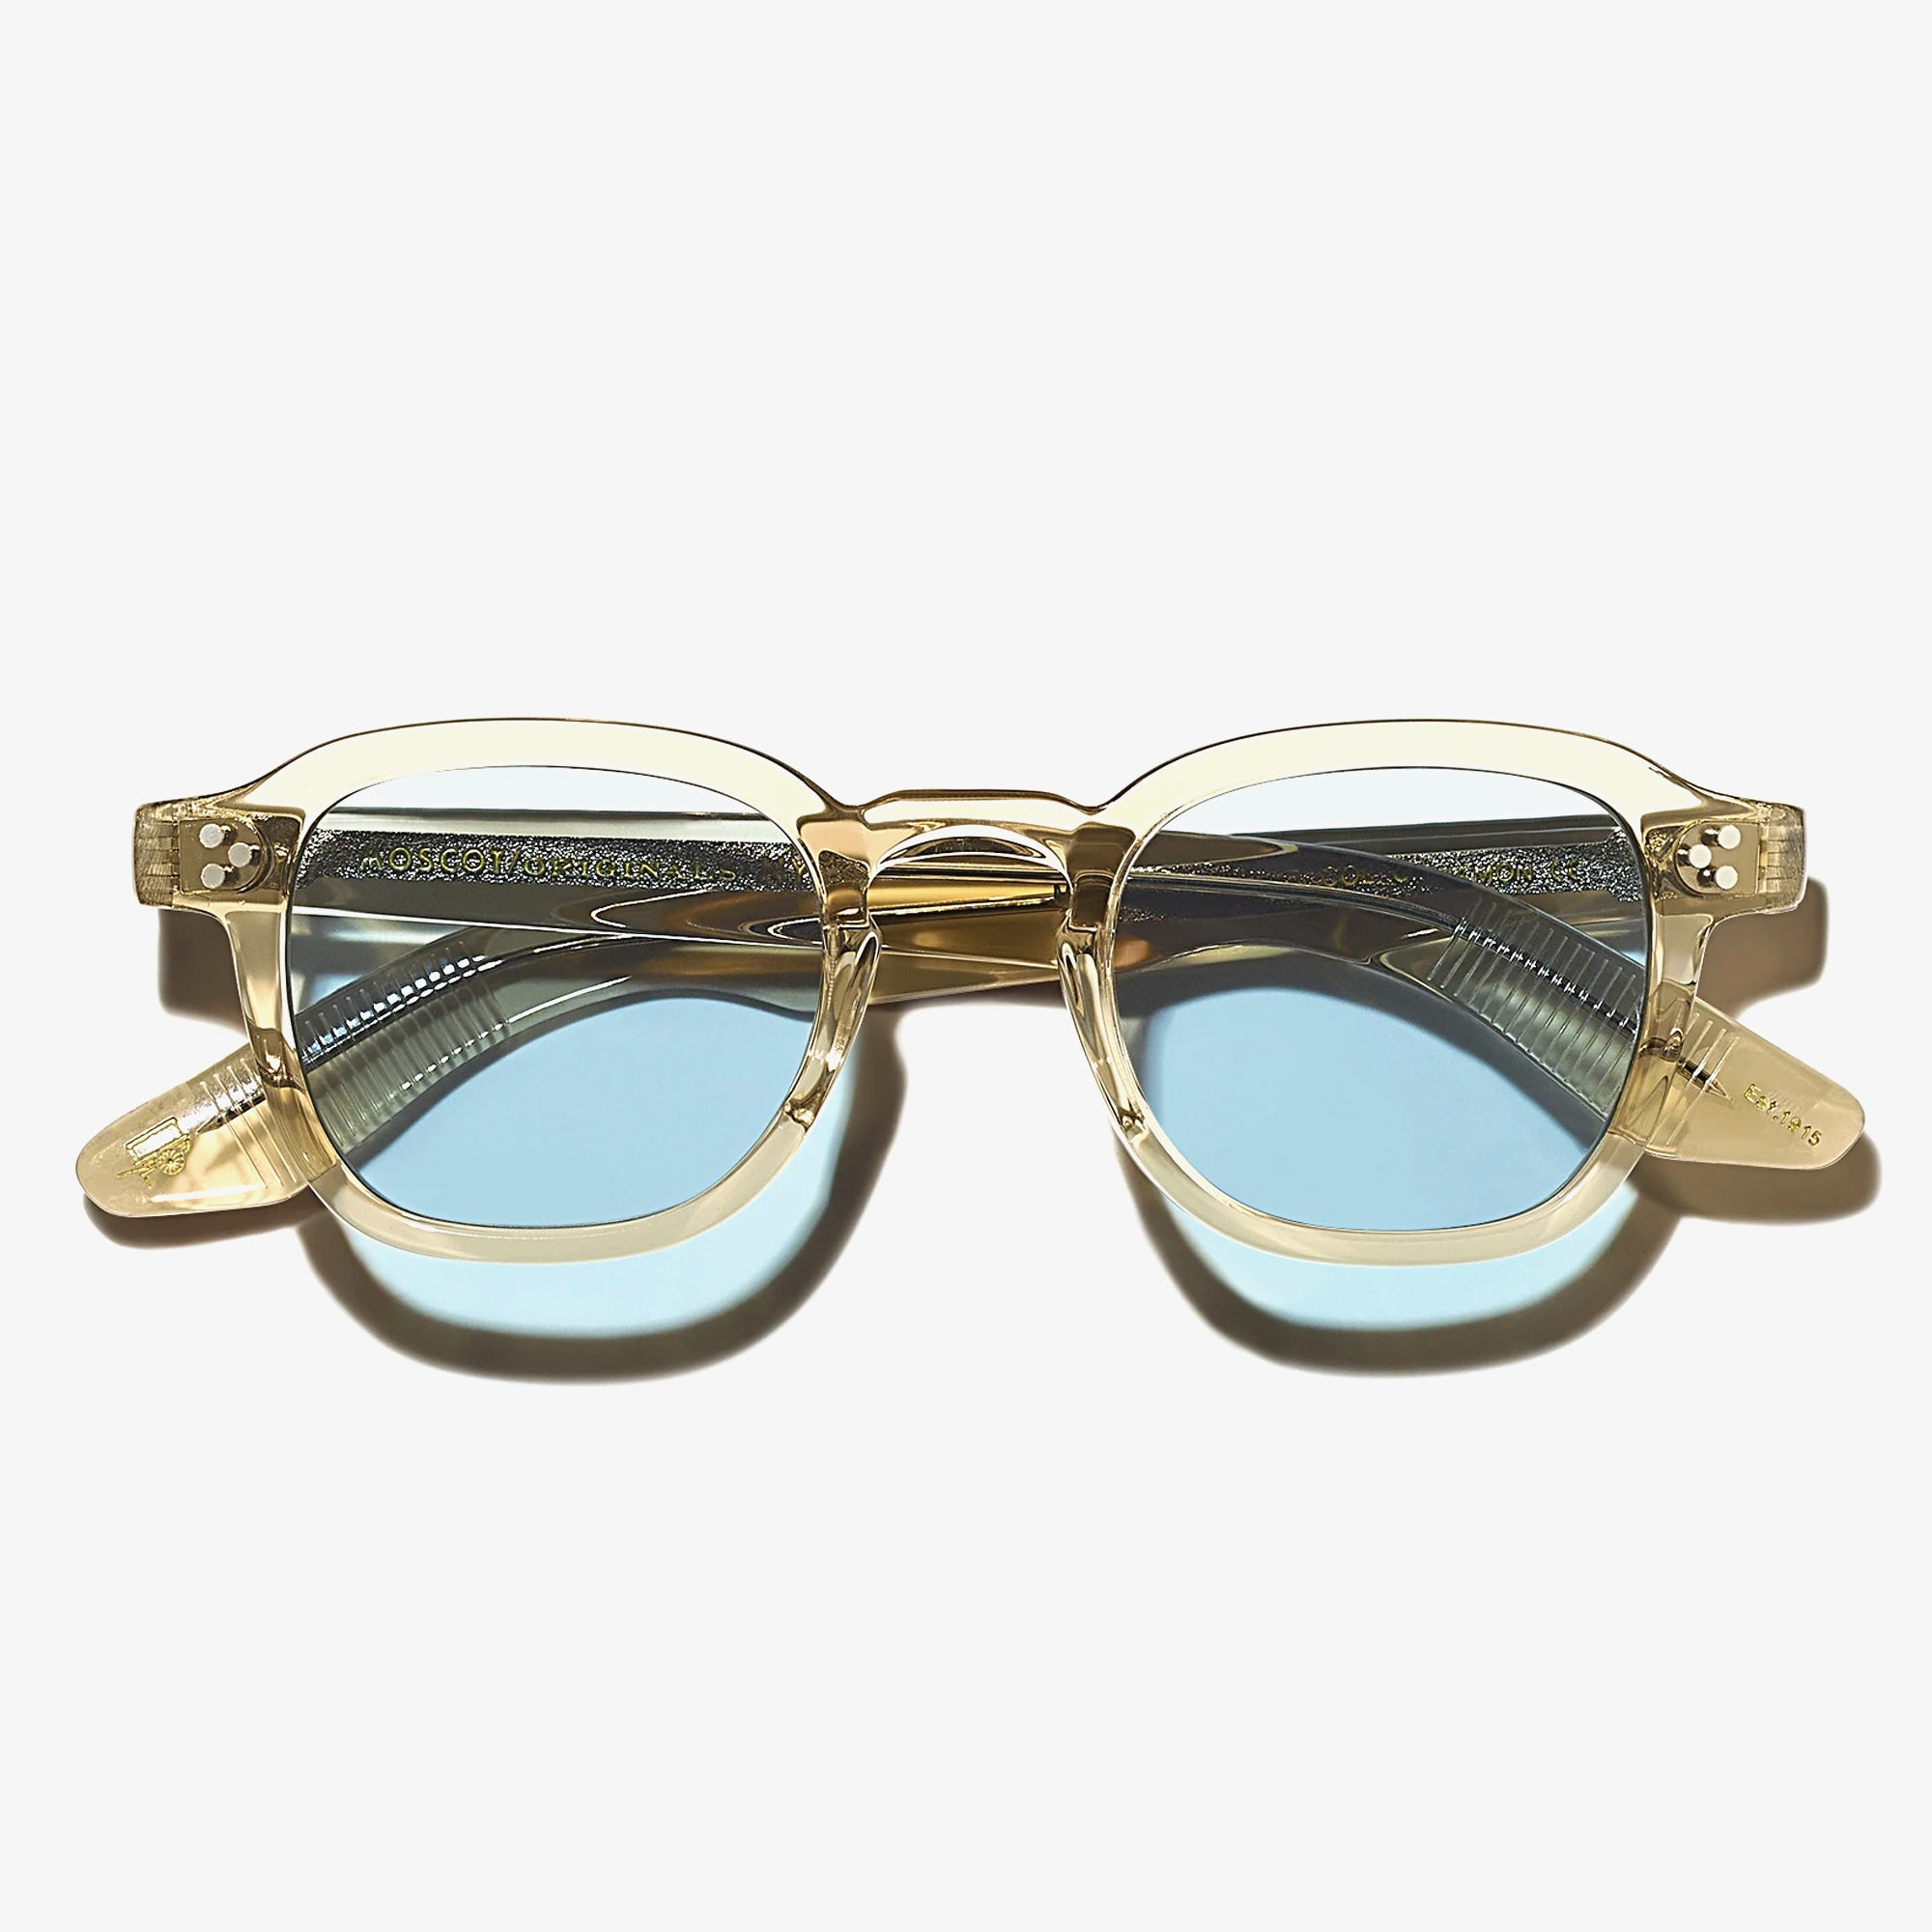 Moscot Momza Sunglasses - Cinnamon / Blue 1